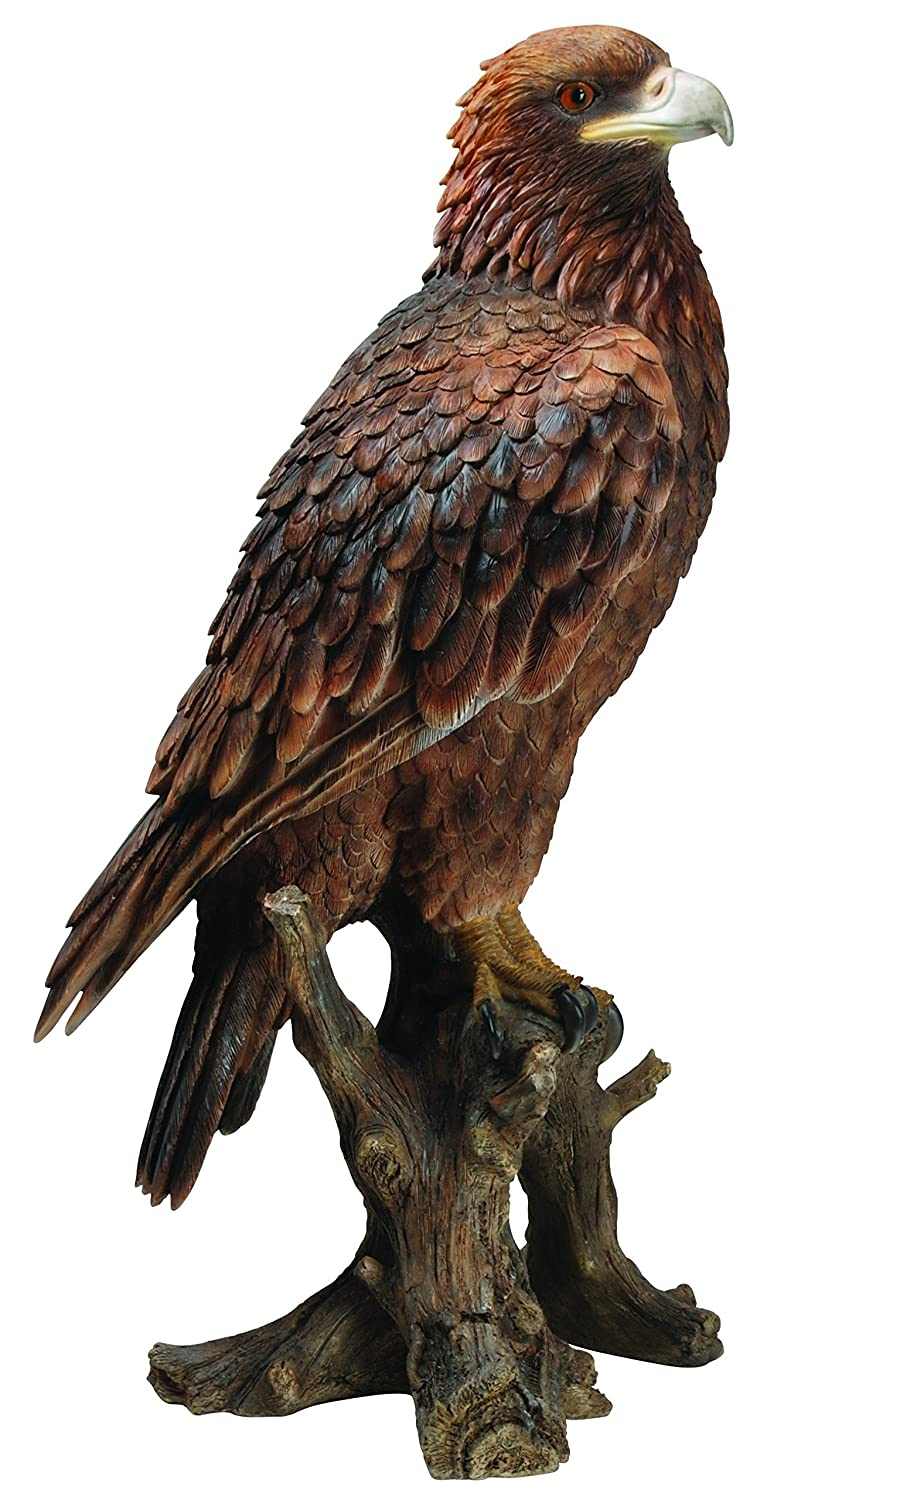 Vivid Arts Golden Eagle Resin Ornament: Amazon.co.uk: Garden U0026 Outdoors